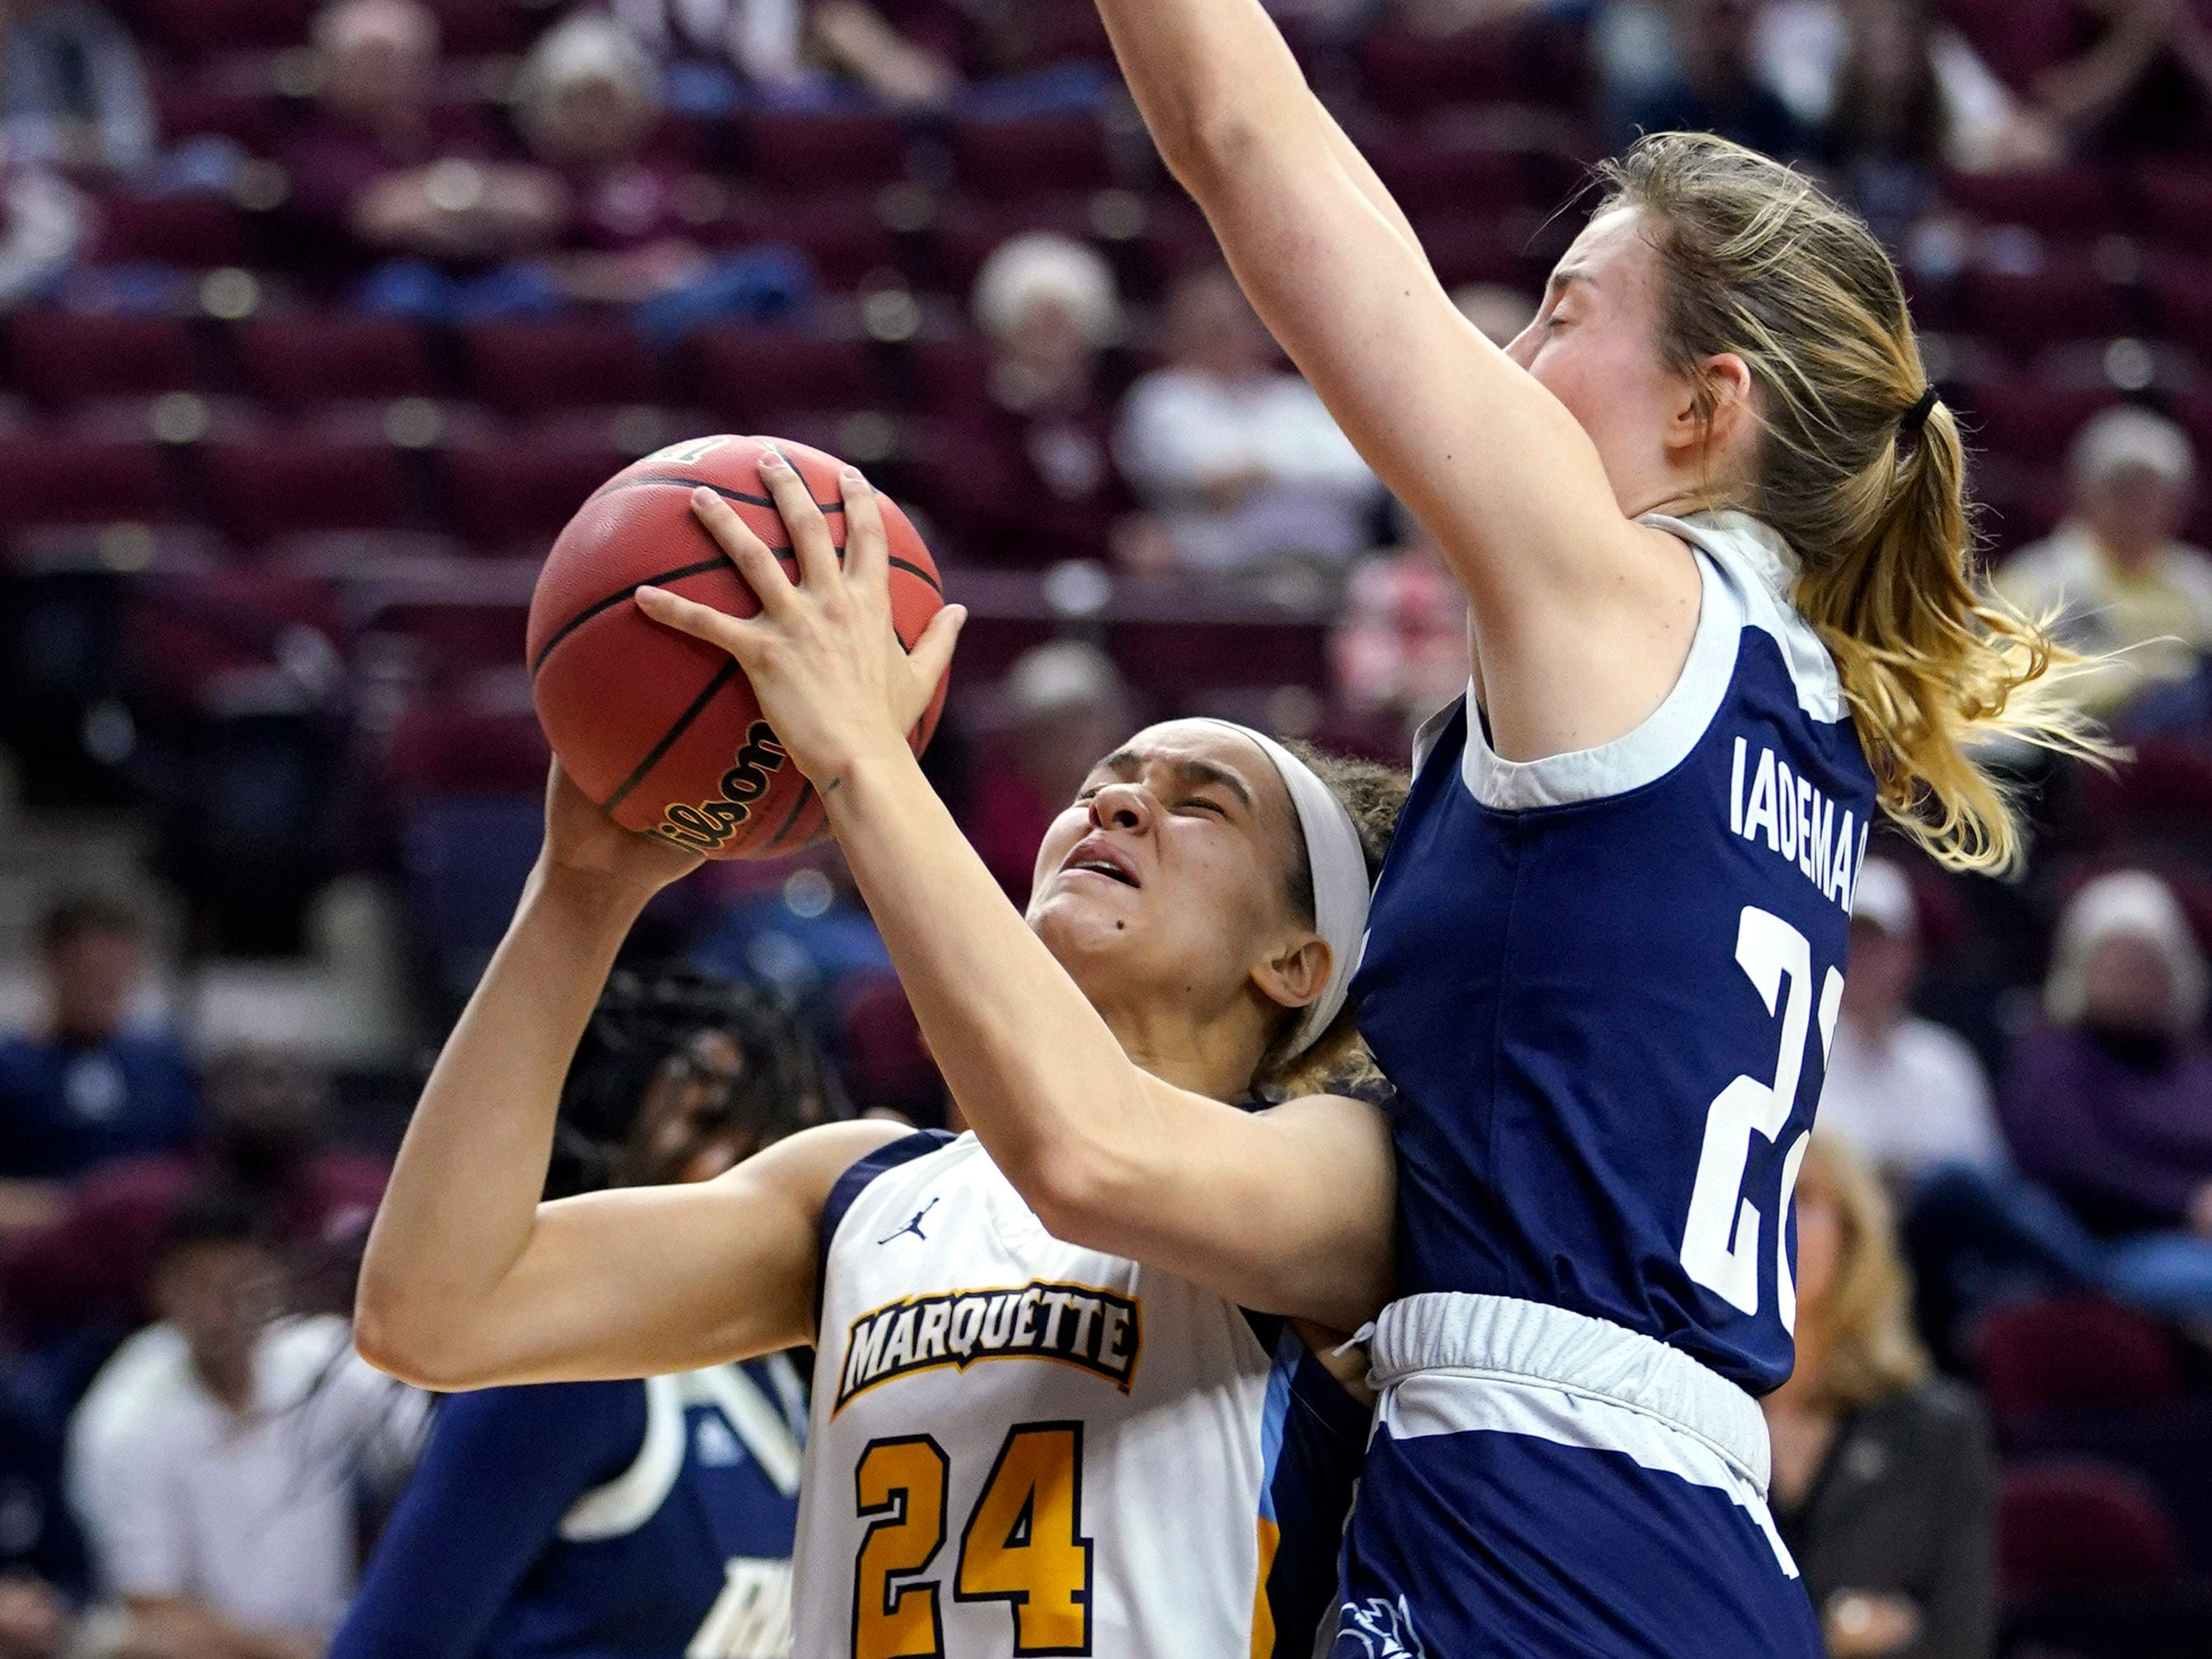 Marquette's Selena Lott tries to get a shot off against Rice's Nicole Iademarco during the first half.